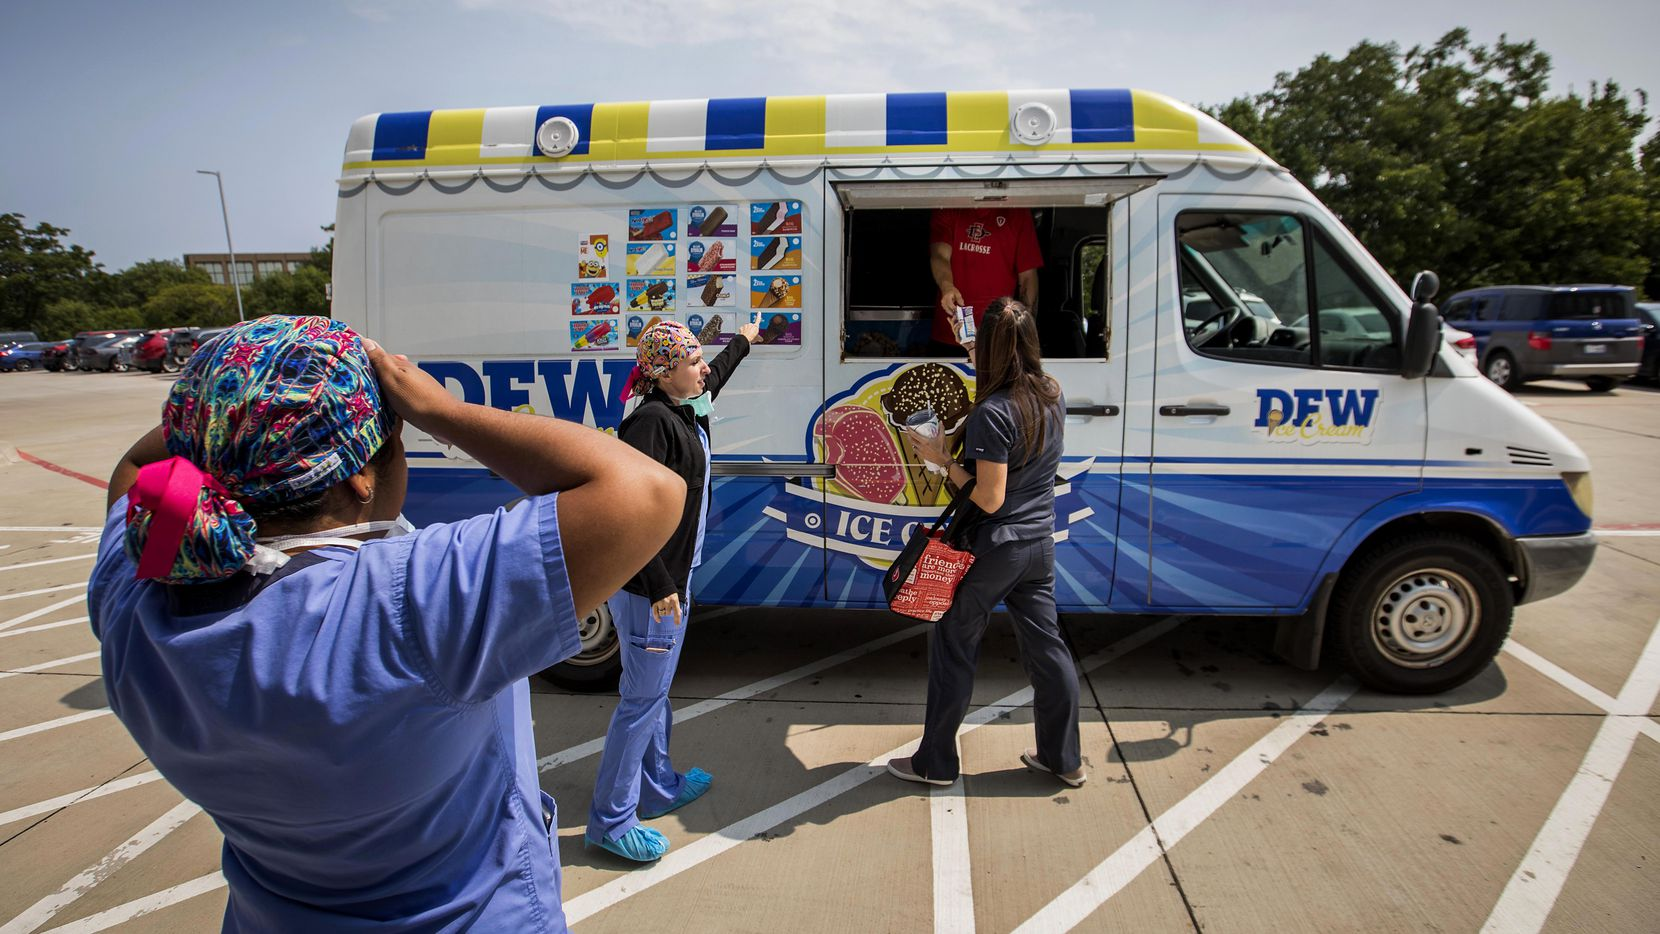 Key-Whitman Eye Center staffers took a break to visit the ice cream truck brought in to treat employees in the parking lot of the surgery center in 2018.